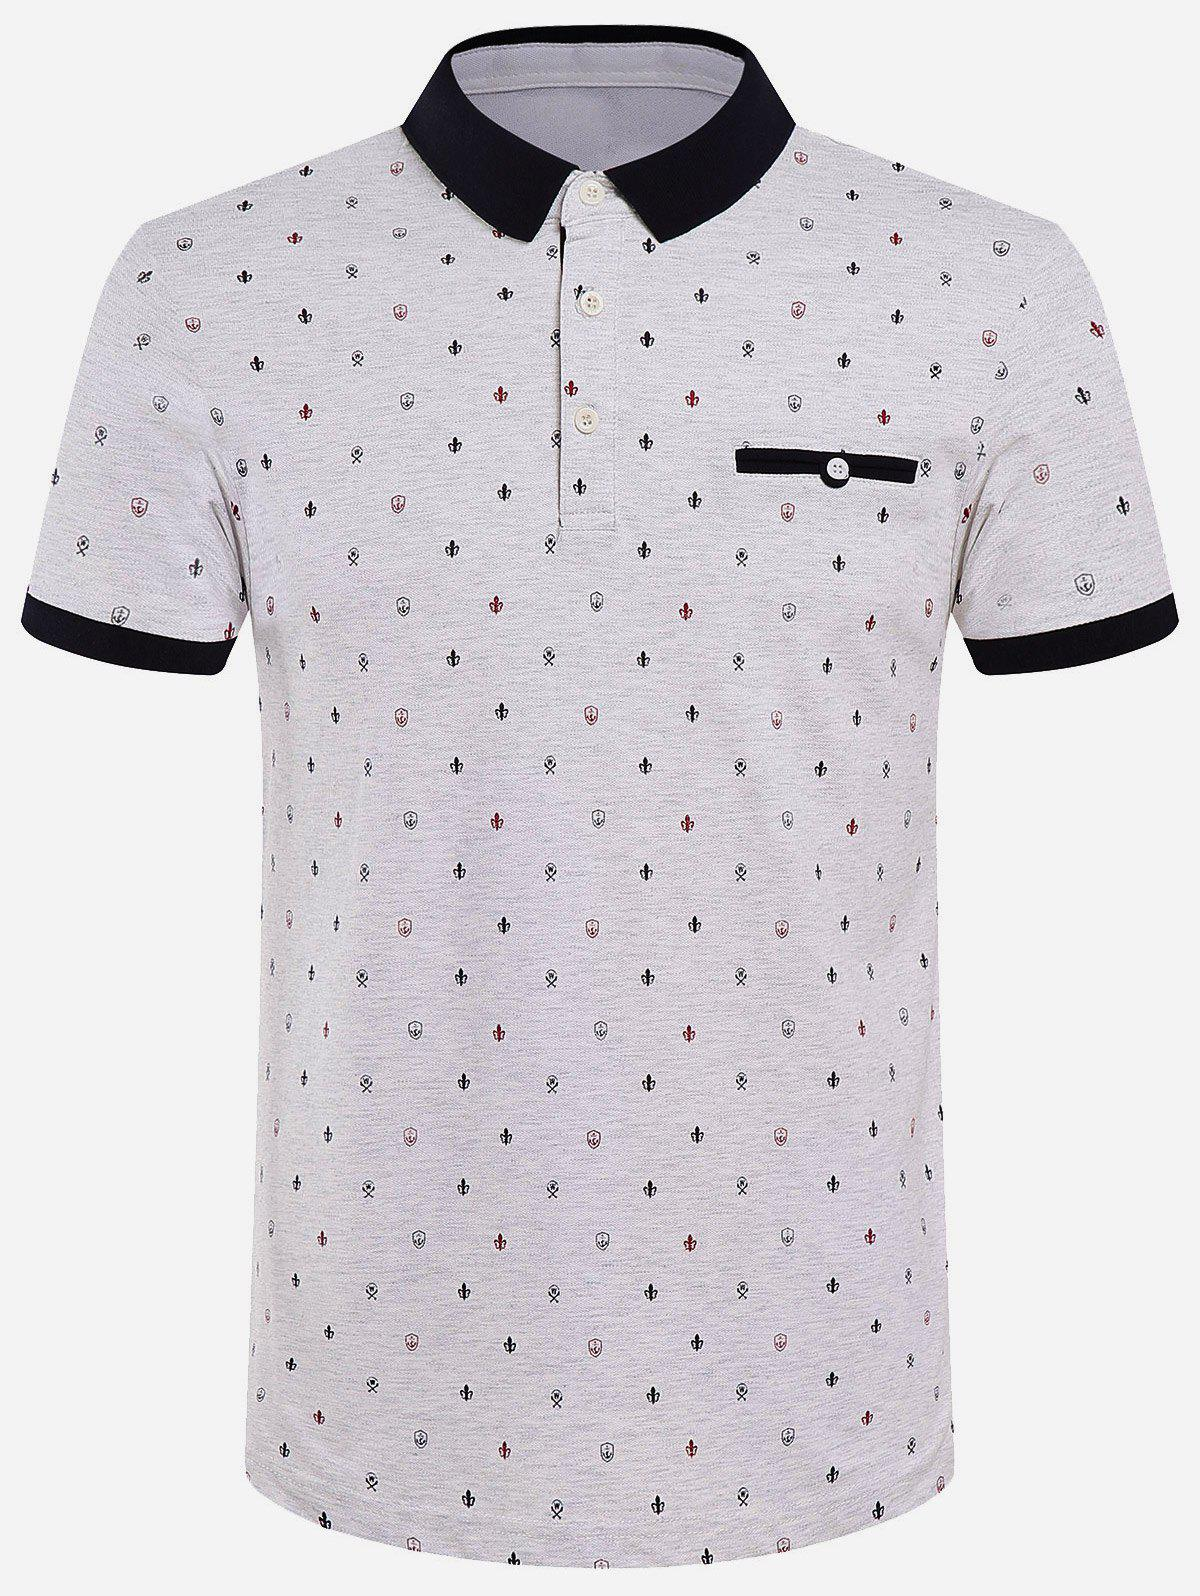 Cotton Blends Color Block Spliced Printed Turn-Down Collar Short Sleeve Polo T-Shirt - GRAY 2XL